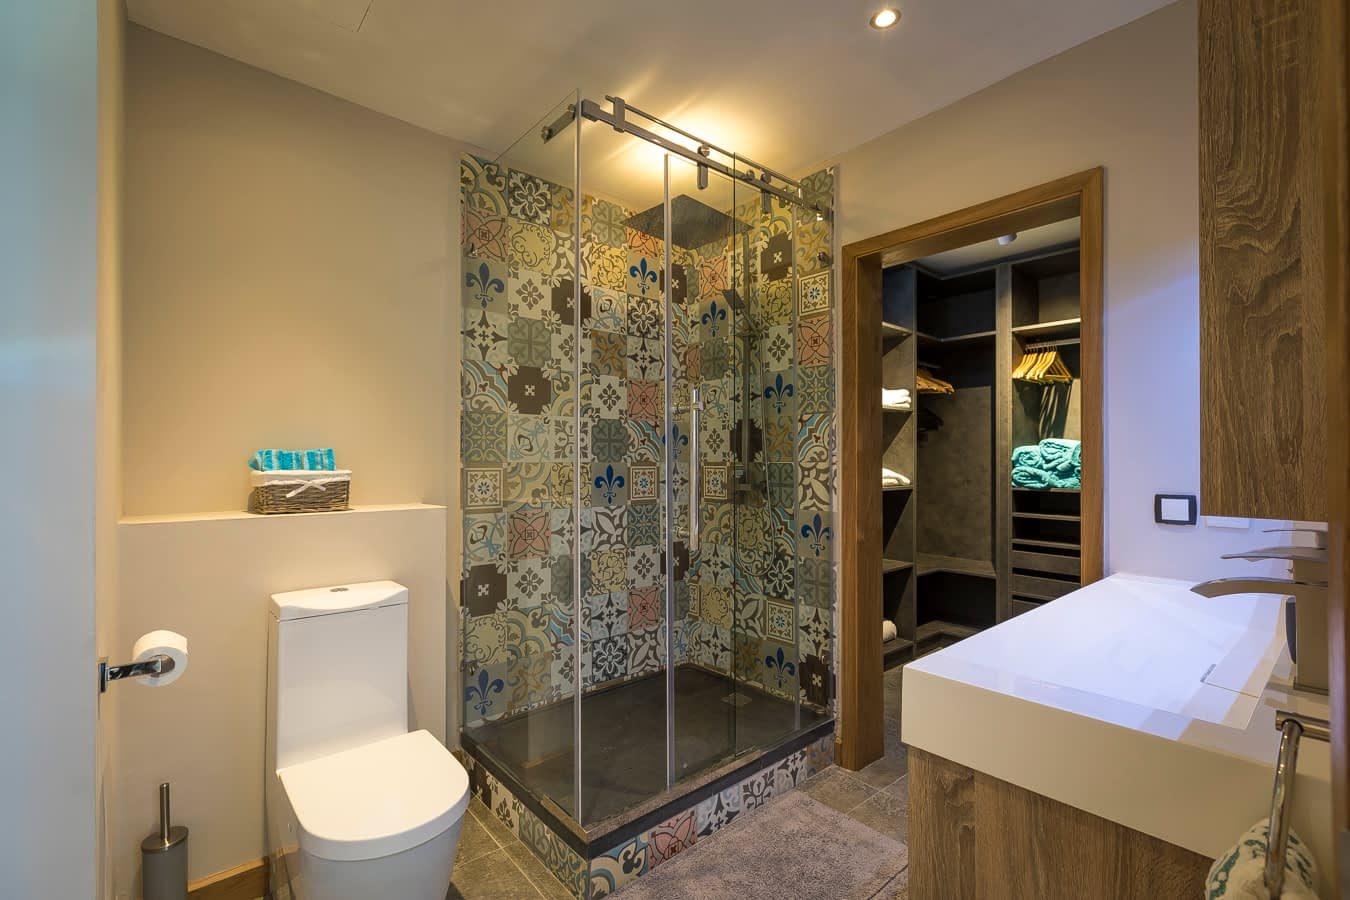 KotNor bathroom2